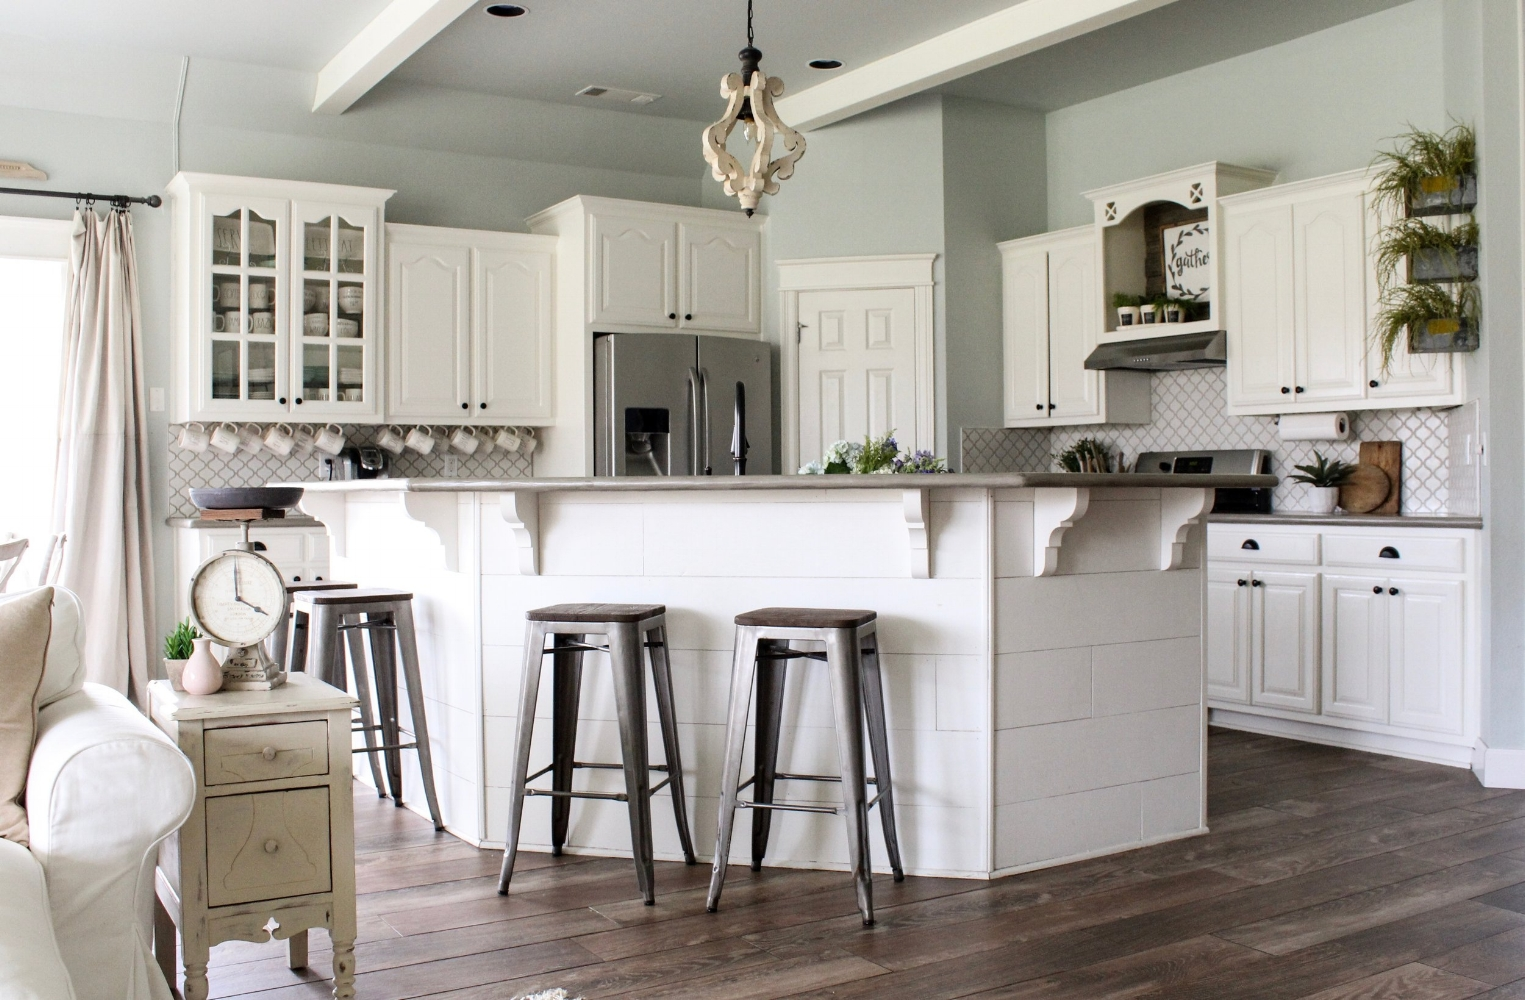 My Yellow Farmhouse Blog Springtime Home Tour Kitchen And Nook Cotton Stem